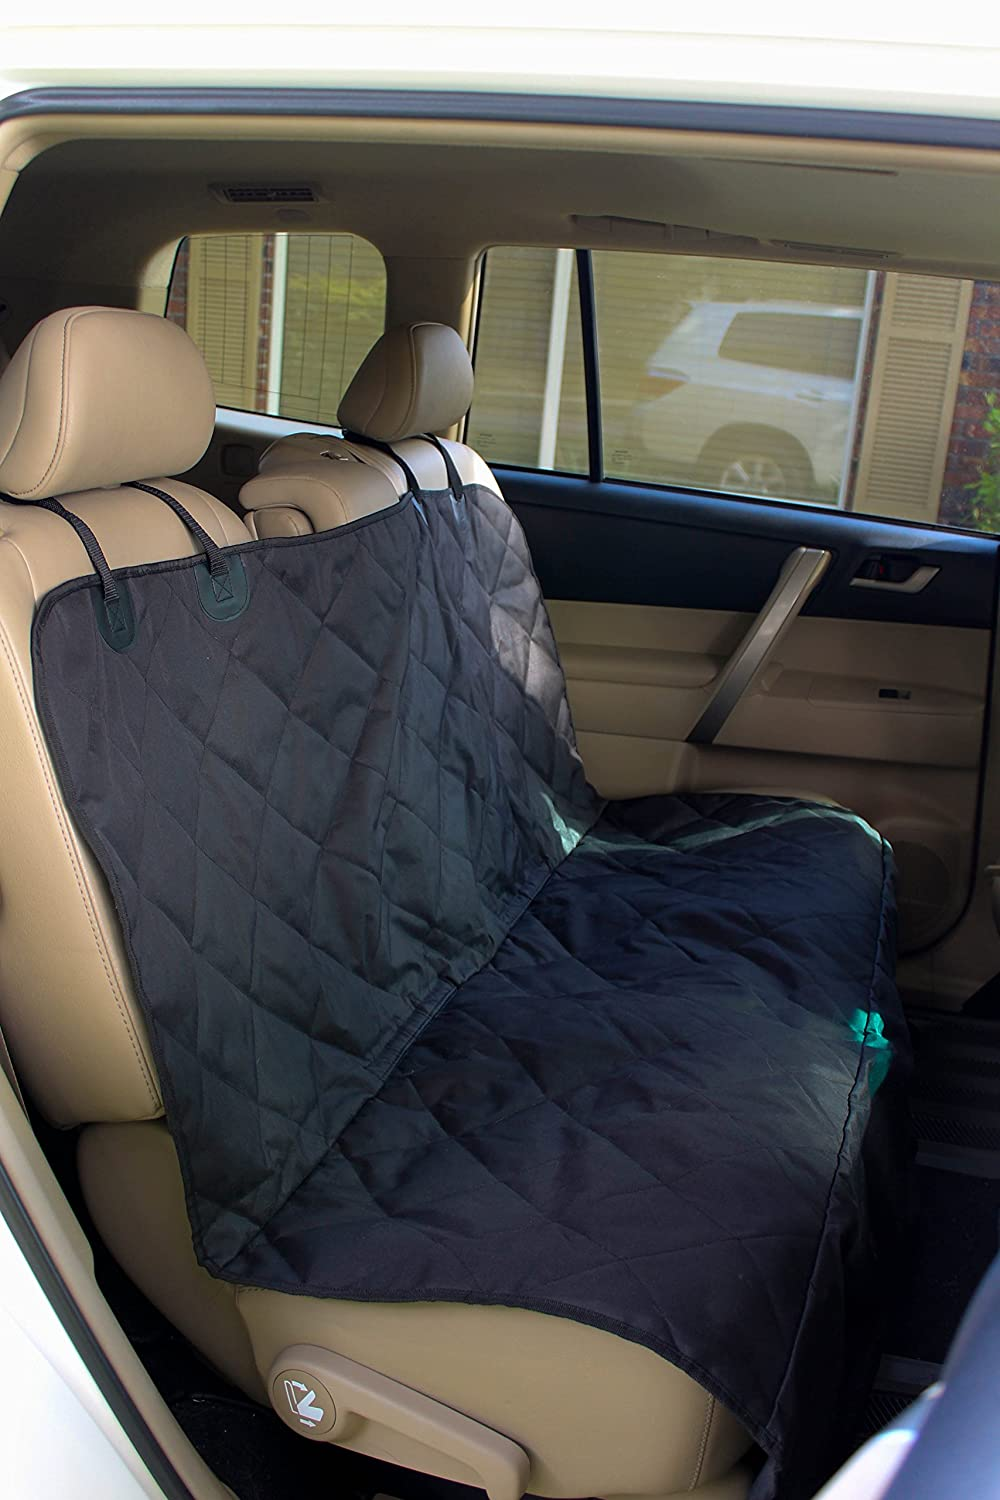 Amazon.com : Pet Seat Cover for Cars - Easy to Clean Quilted ... : quilted car seats - Adamdwight.com